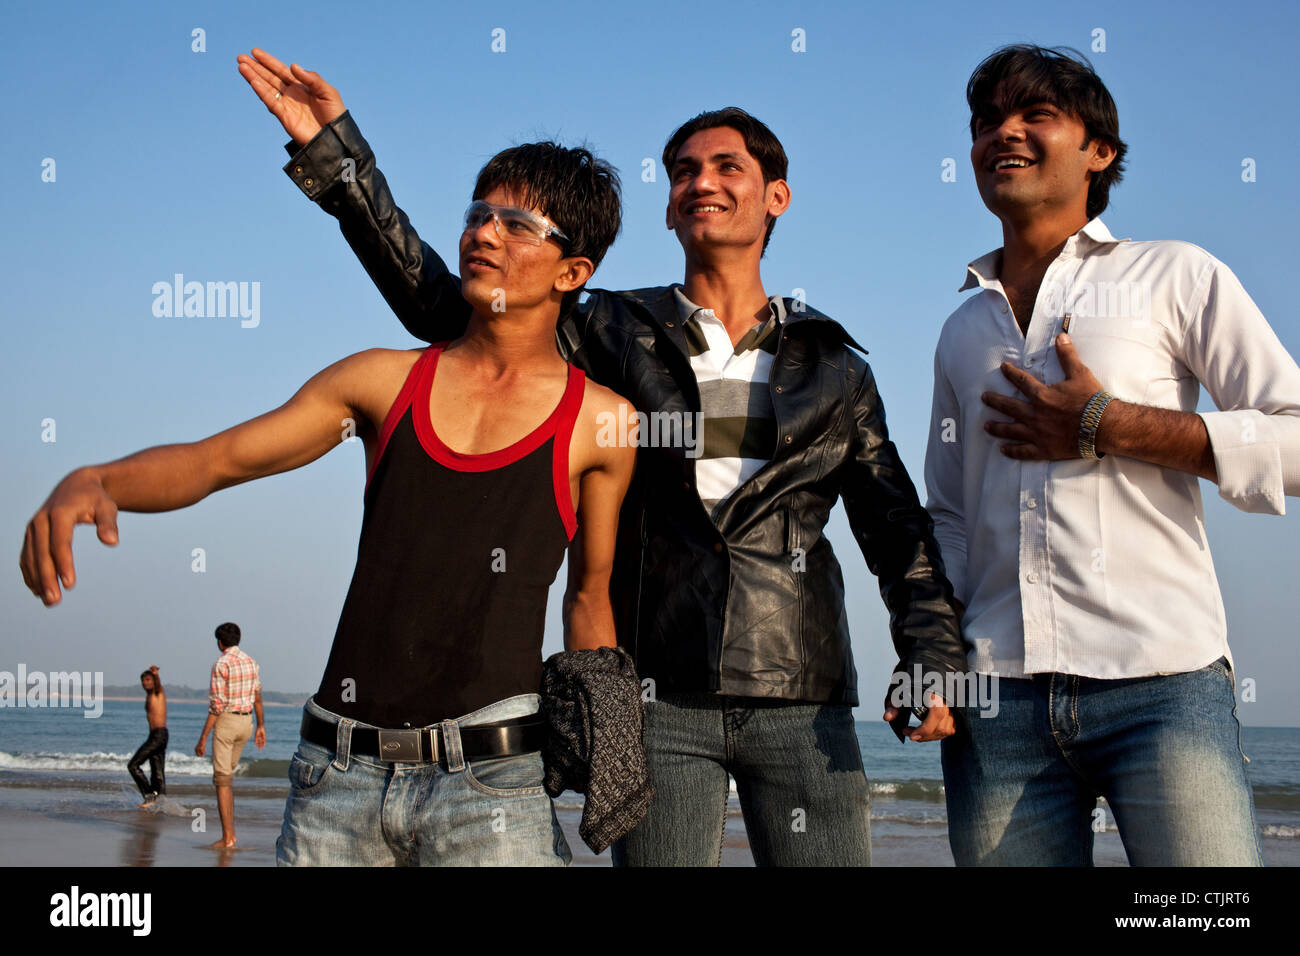 A group of young Indian holidaymakers on Nagoa Beach in Diu, India. - Stock Image